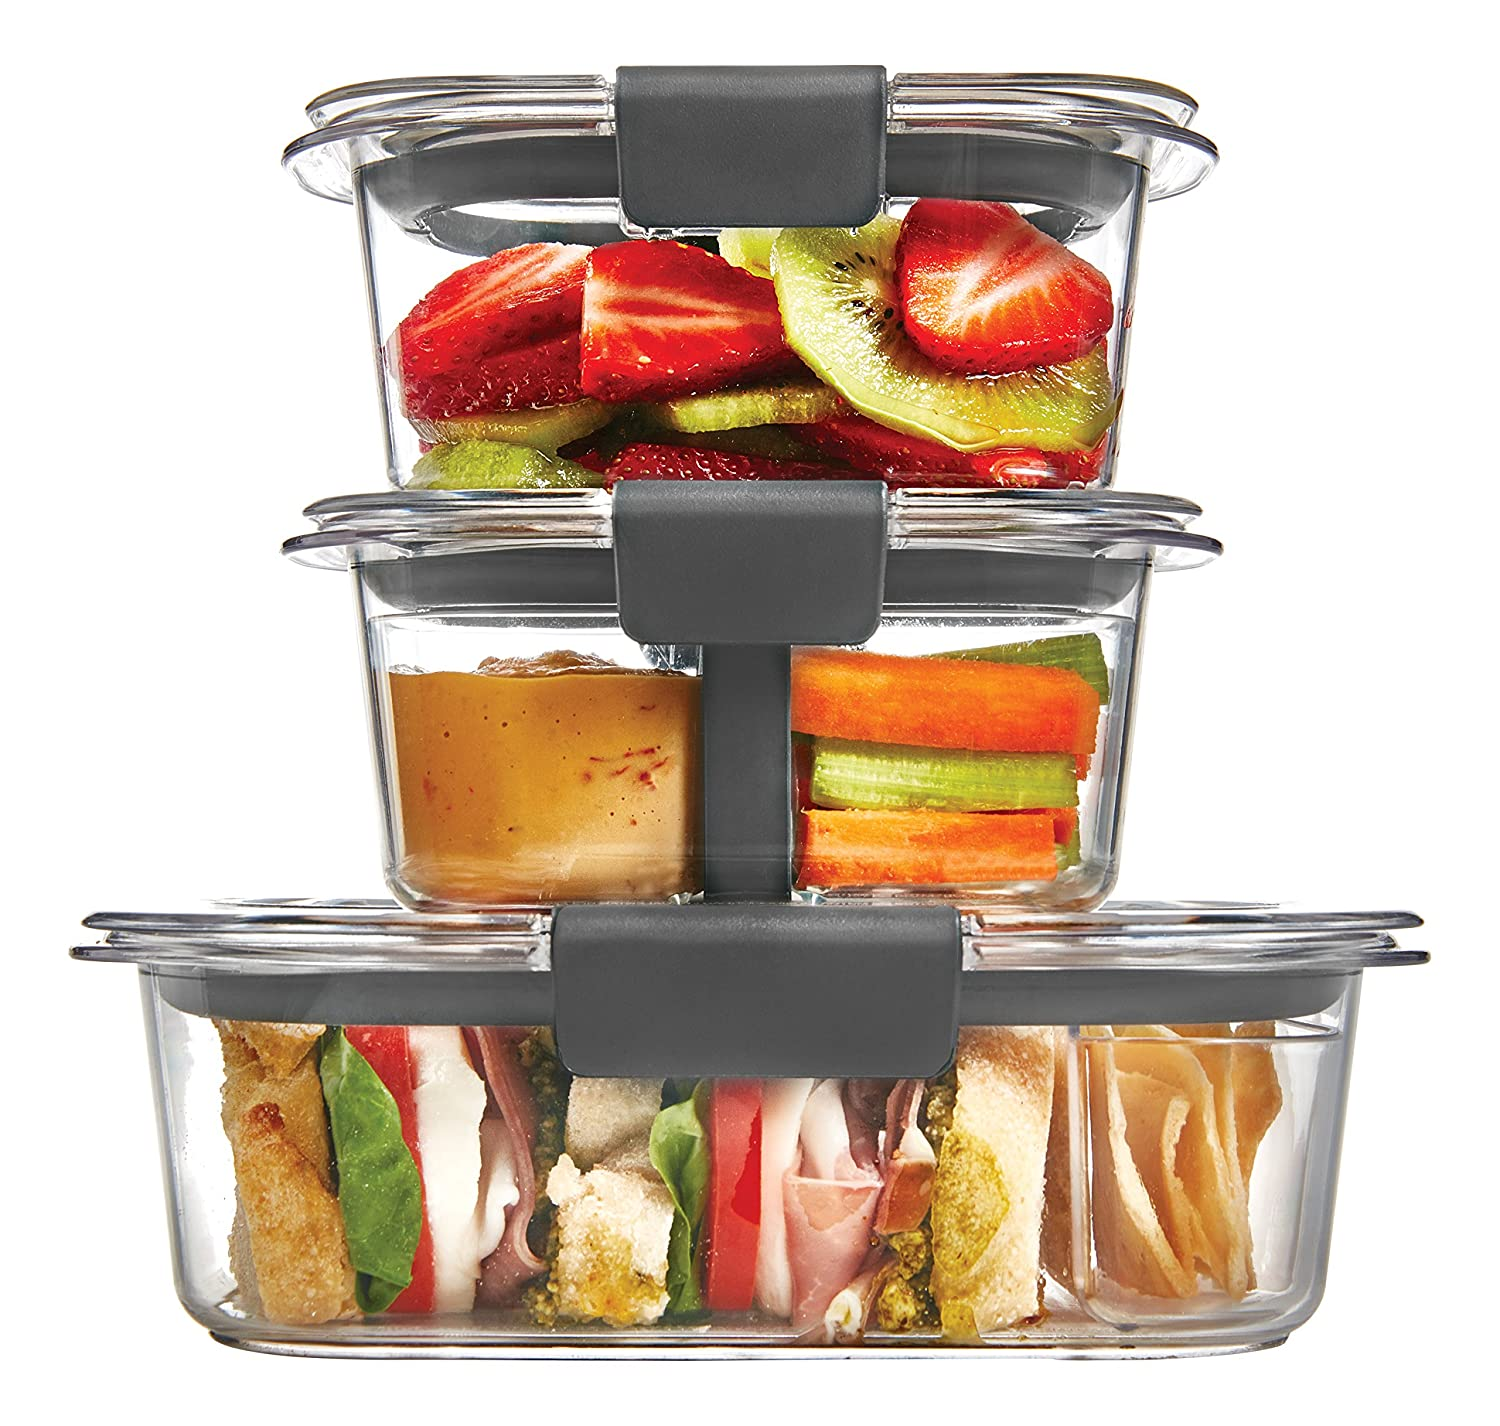 Rubbermaid Brilliance Food Storage Container, 10 Piece Sandwich/Snack Lunch Kit, 100 Percents Leak Proof, Plastic, Clear by Rubbermaid